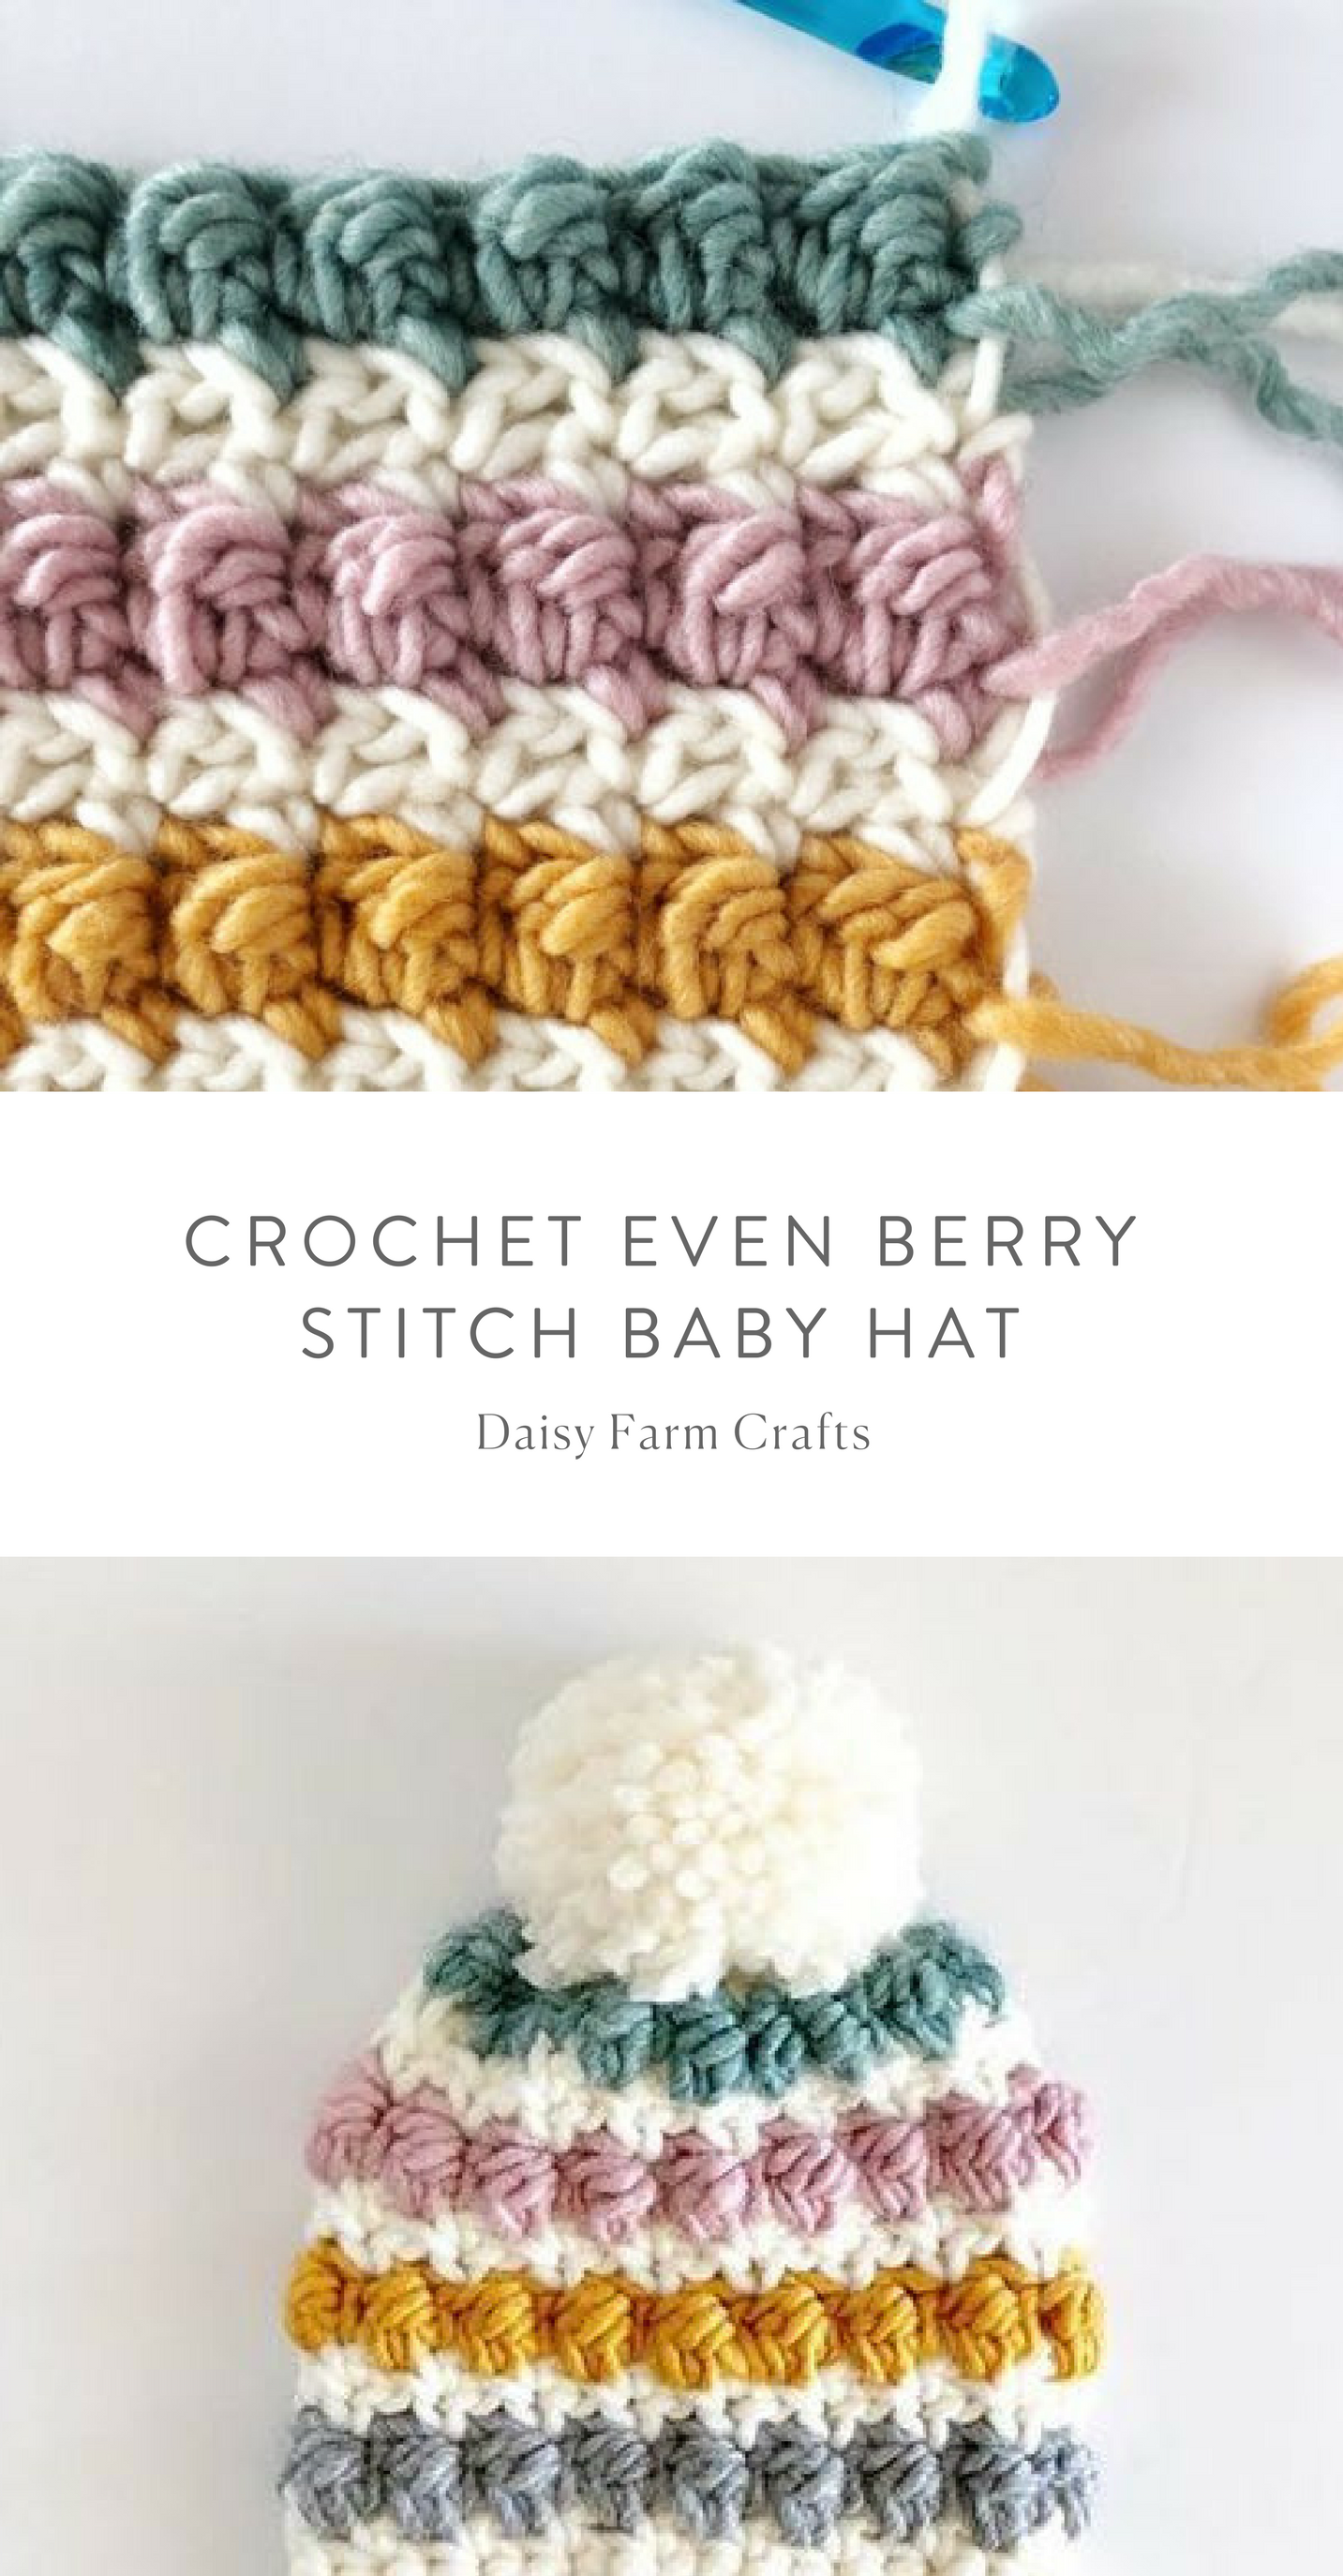 Free Pattern - Crochet Even Berry Stitch Baby Hat   Knitting and ...